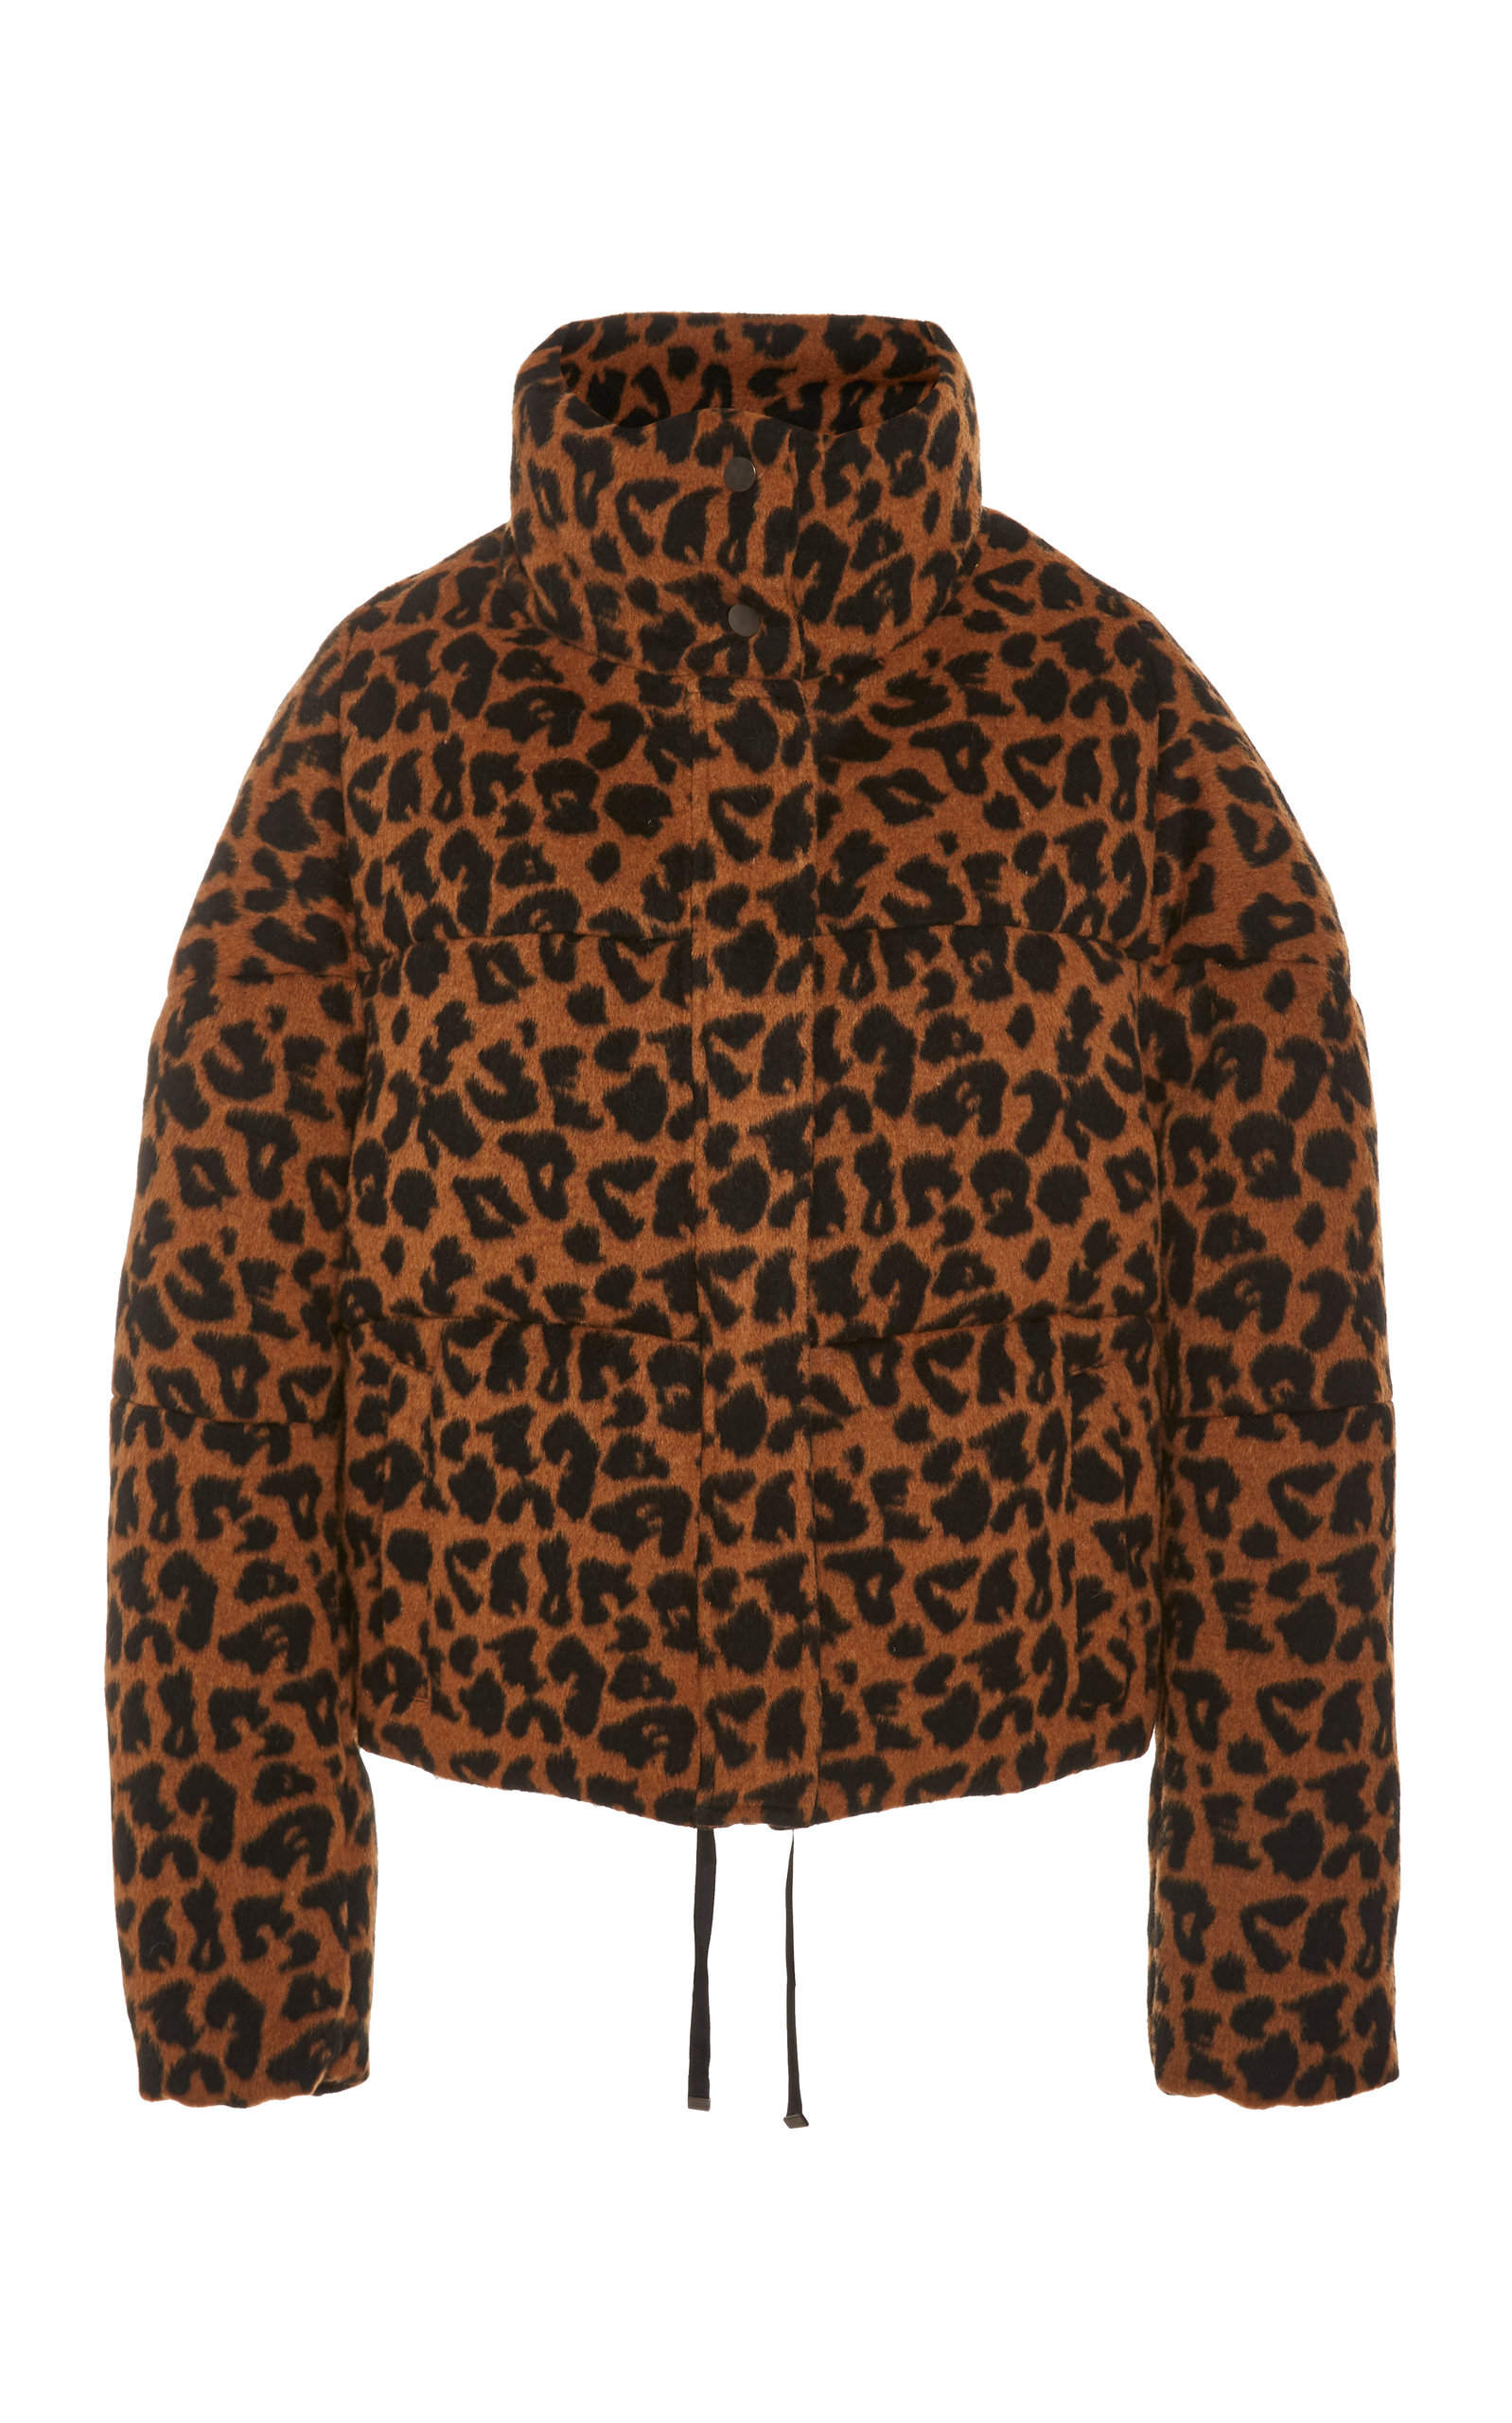 Apparis Coats QUILTED PRINTED BRUSHED-FELT COAT SIZE: M